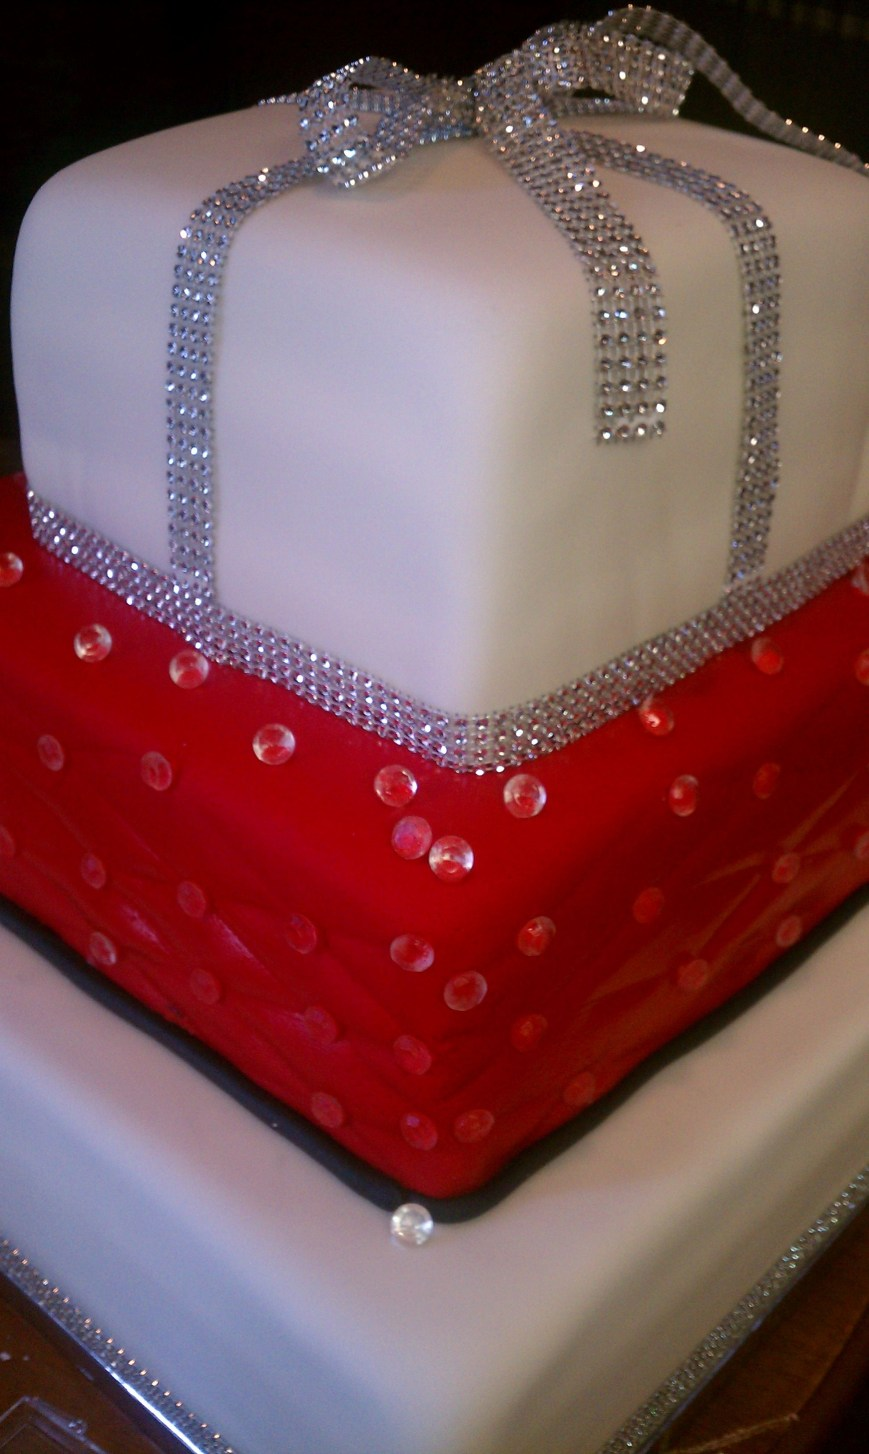 Bling Birthday Cakes 50th Bling Birthday Cake My Cakes Pinterest Cake Birthday